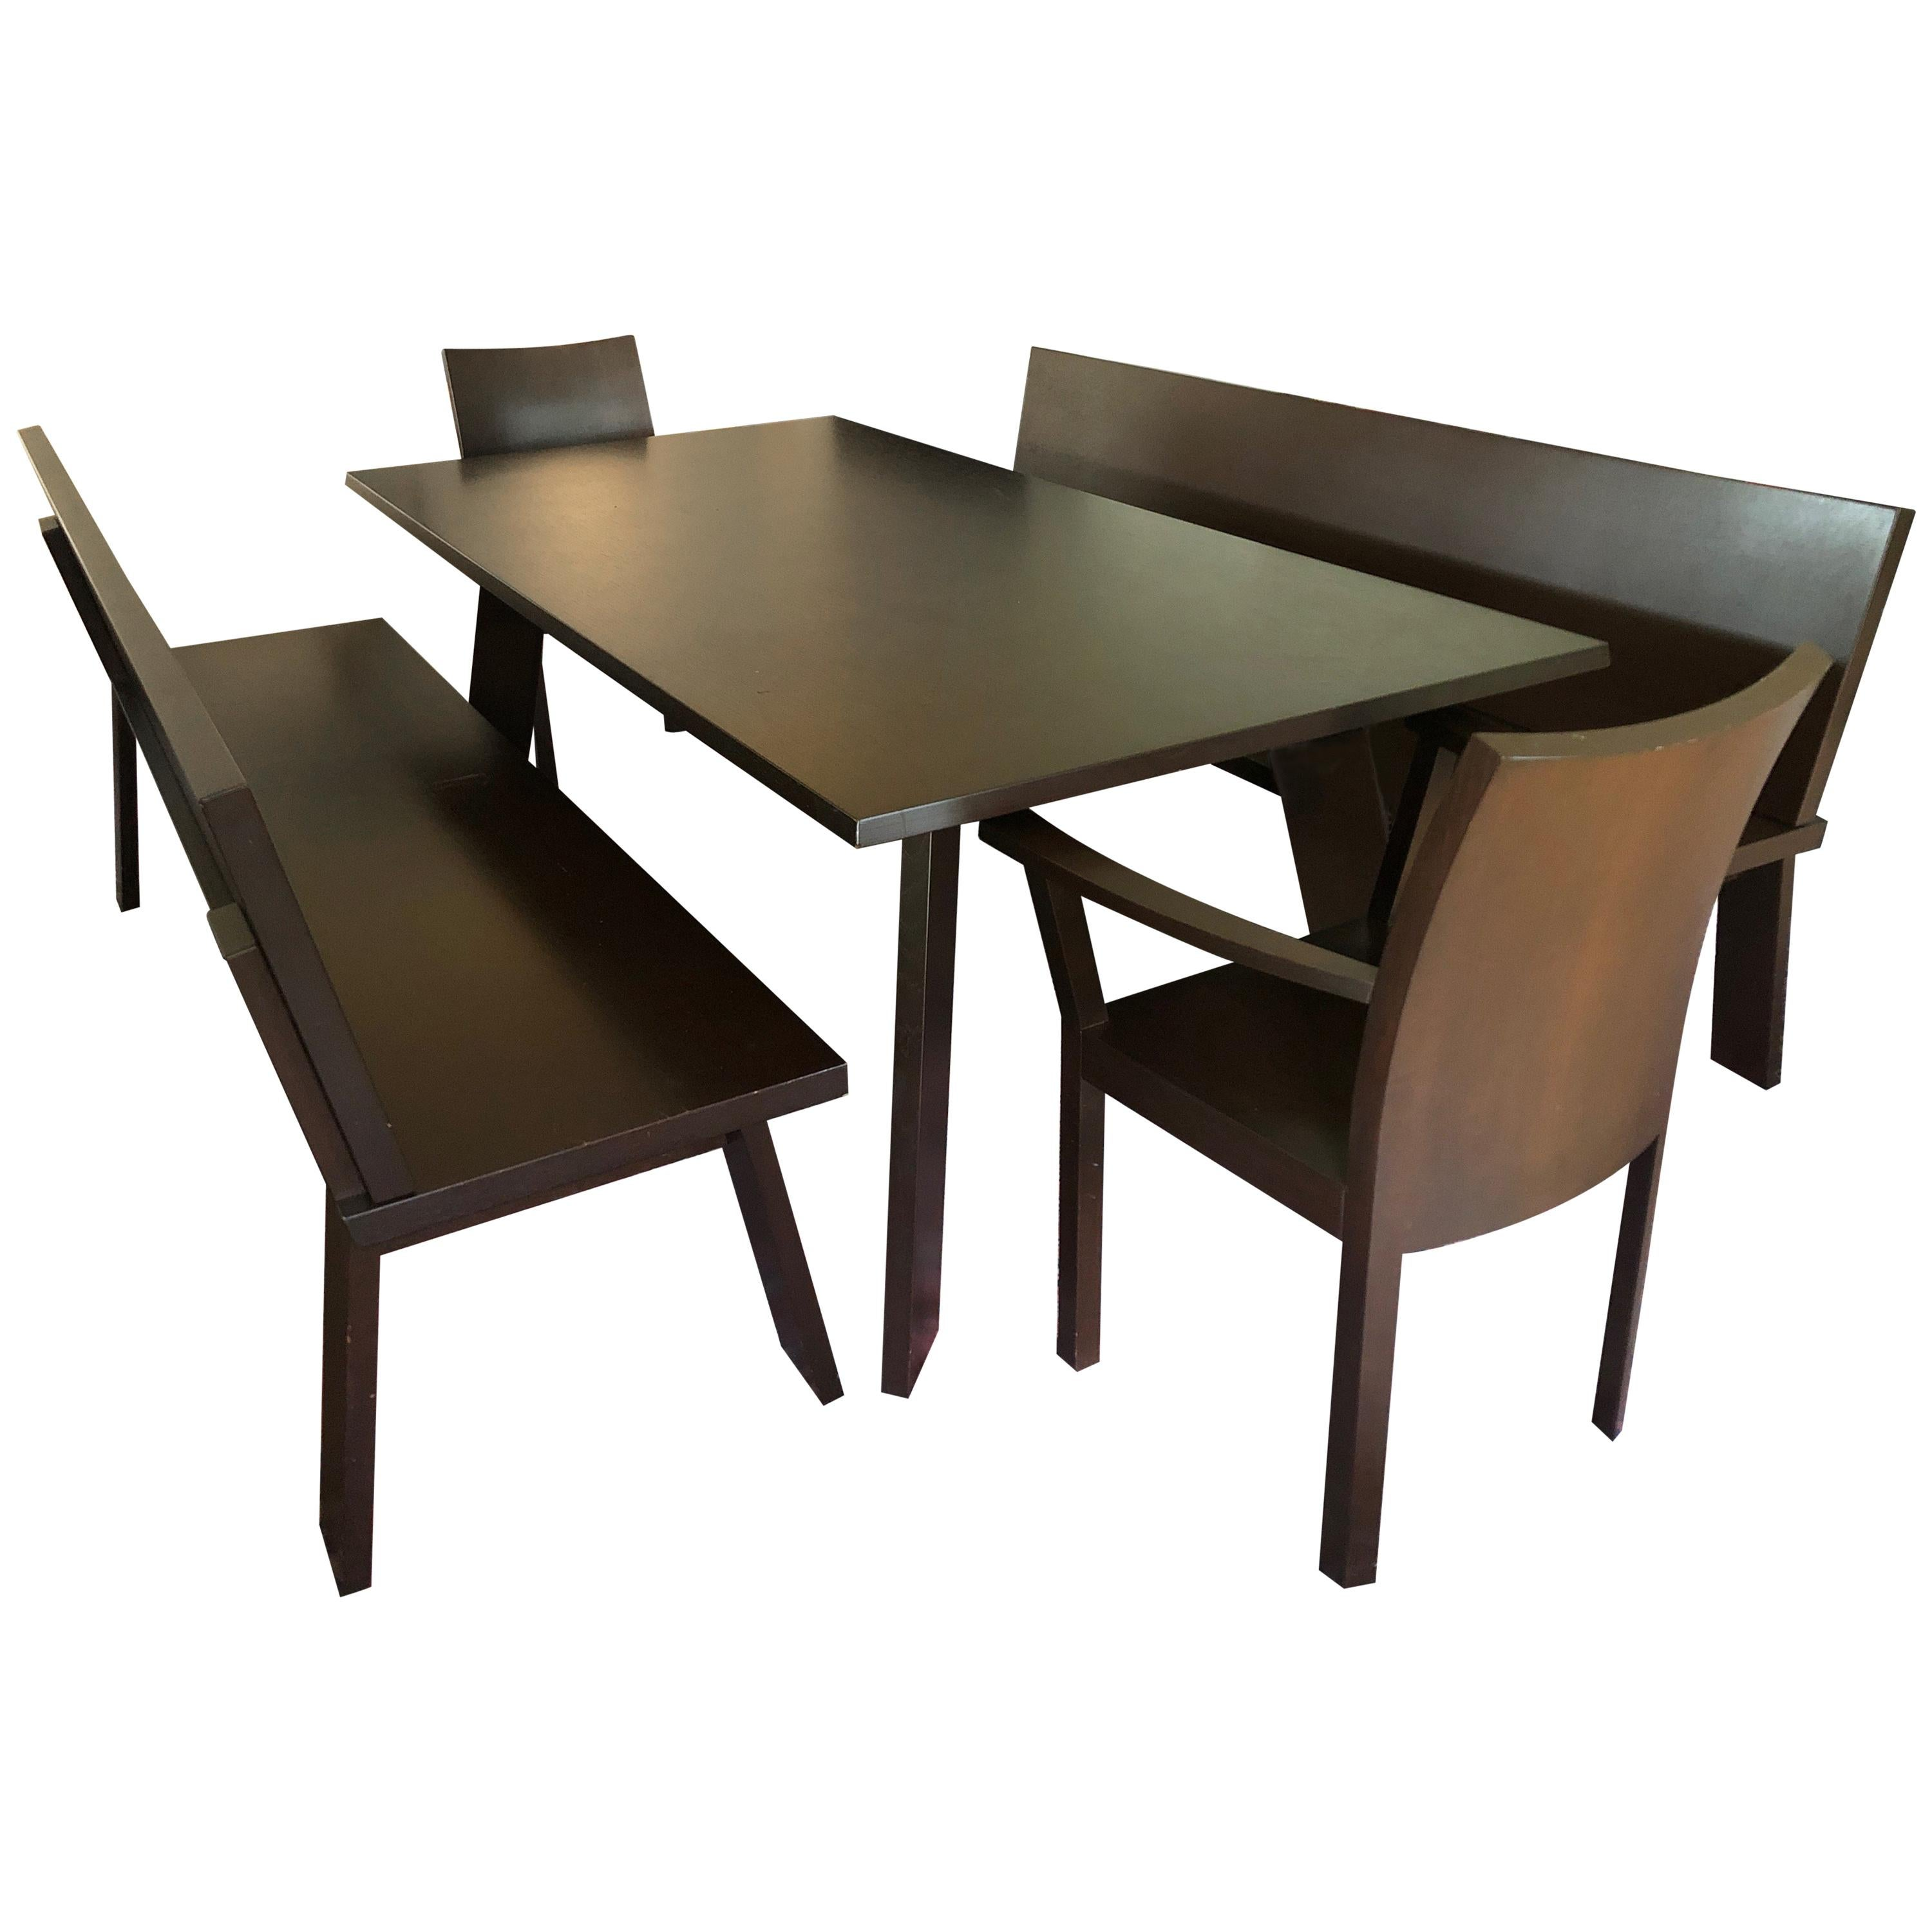 Sophisticated Bulthaup Dining Table With Two Benches And Two Armchairs For  Sale